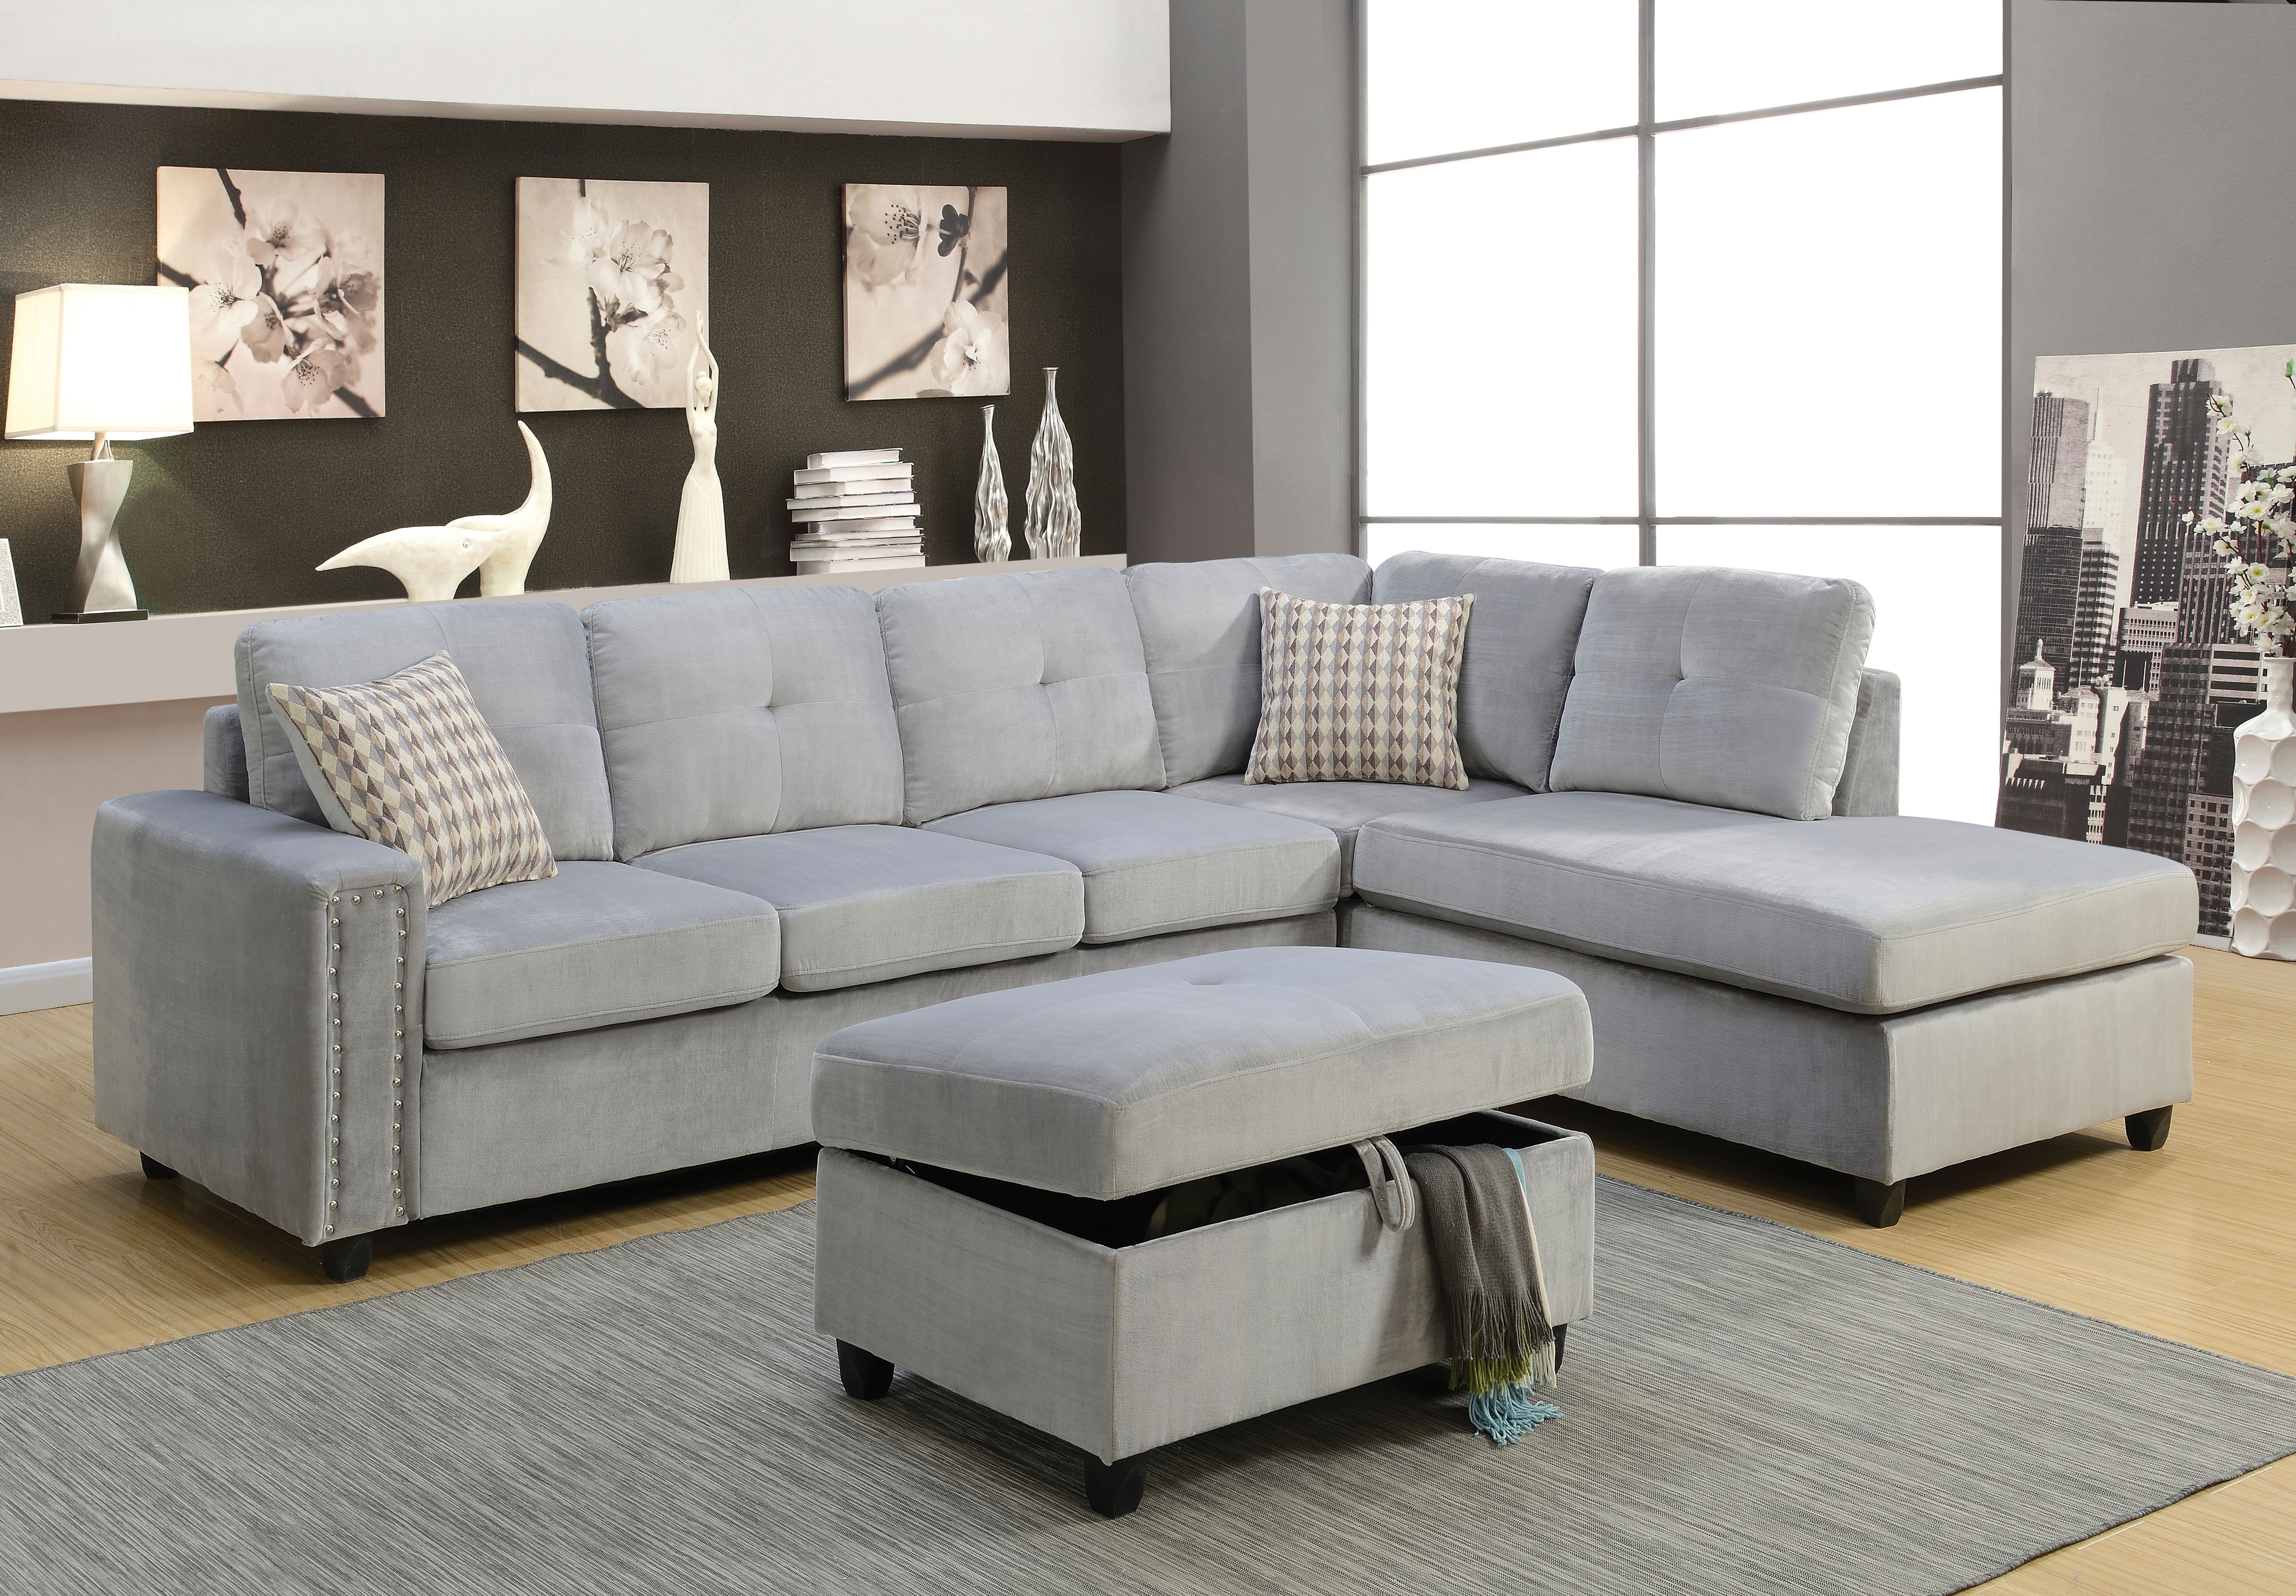 Grey Sectional Sofas Sofa Belville And Ottoman Leons Light Canada Pertaining To Light Grey Sectional Sofas (View 10 of 10)